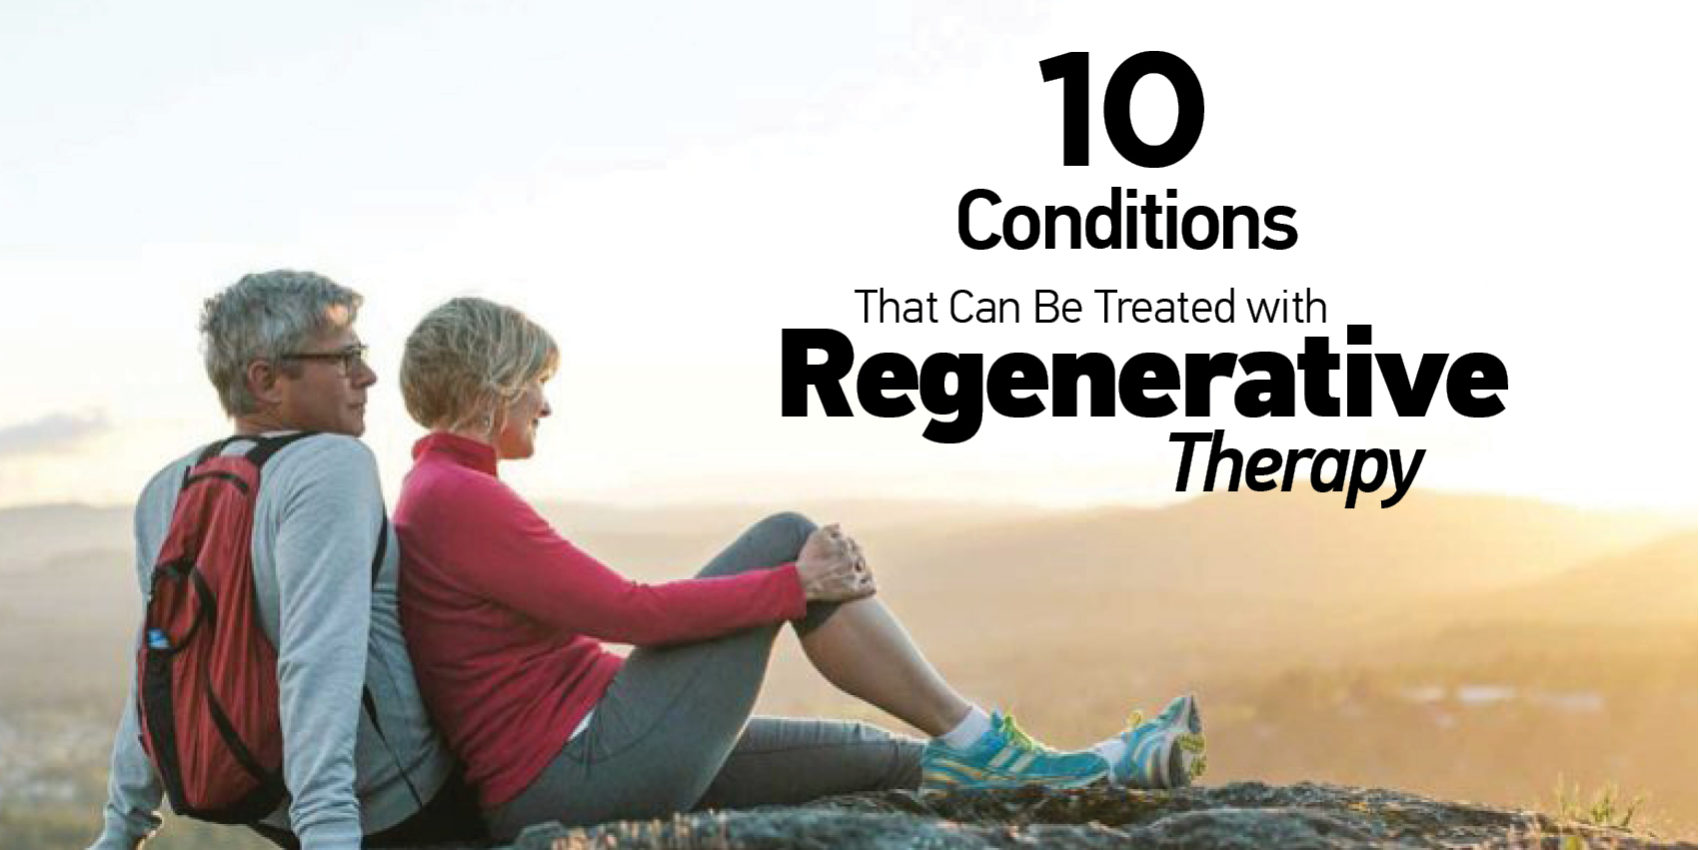 10 Conditions Can be treated with Regenerative treatment